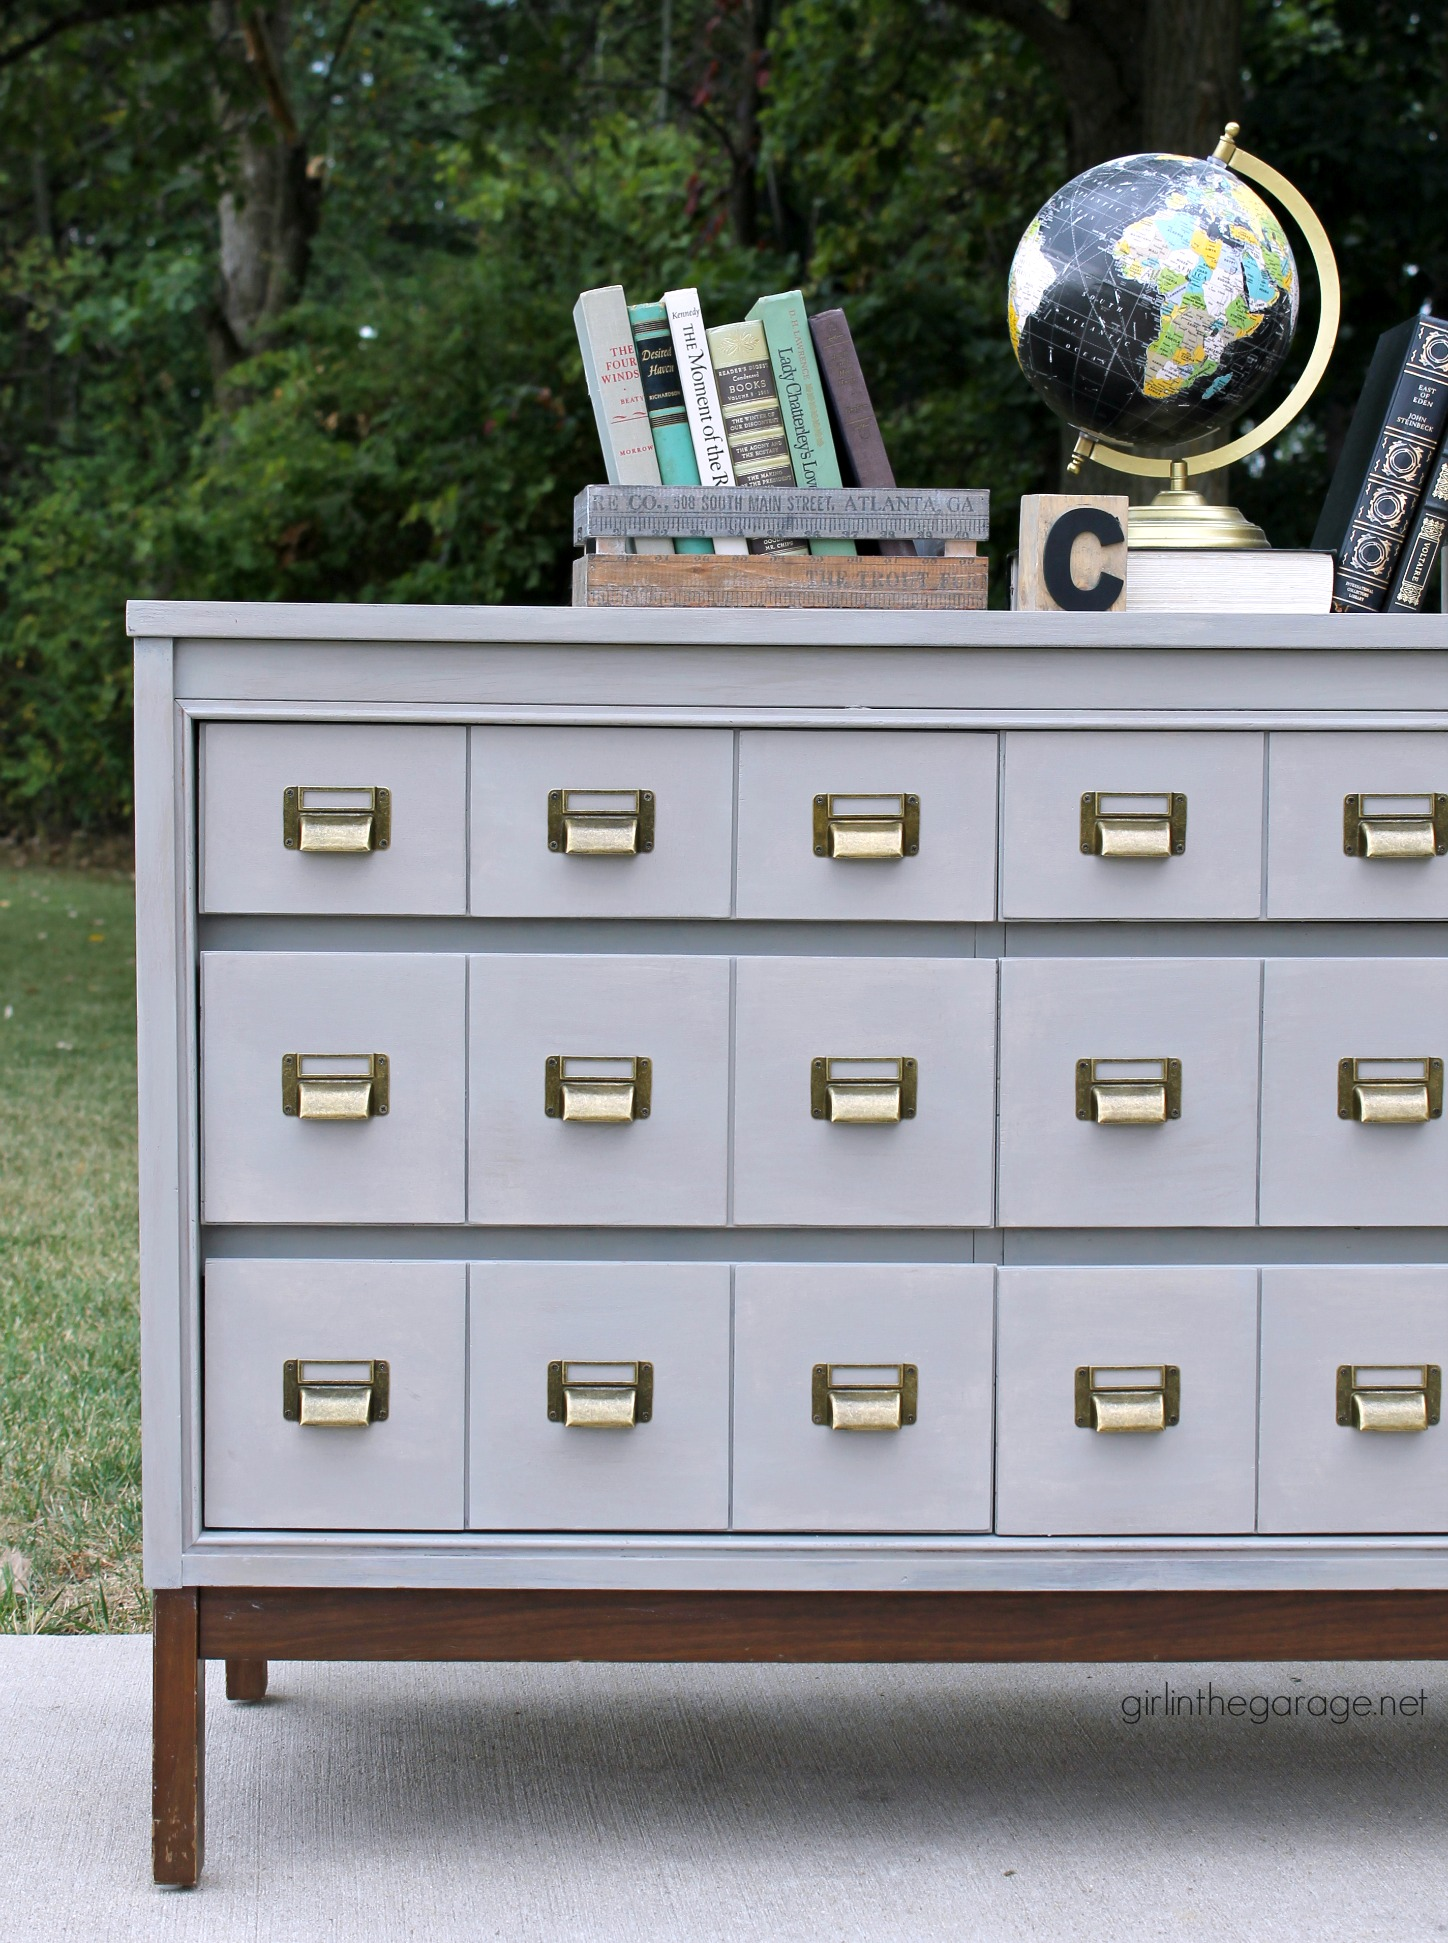 Letter drawer dressers are a popular vintage accessory and with a fresh coat of paint, this fixer upper makeover is stunning